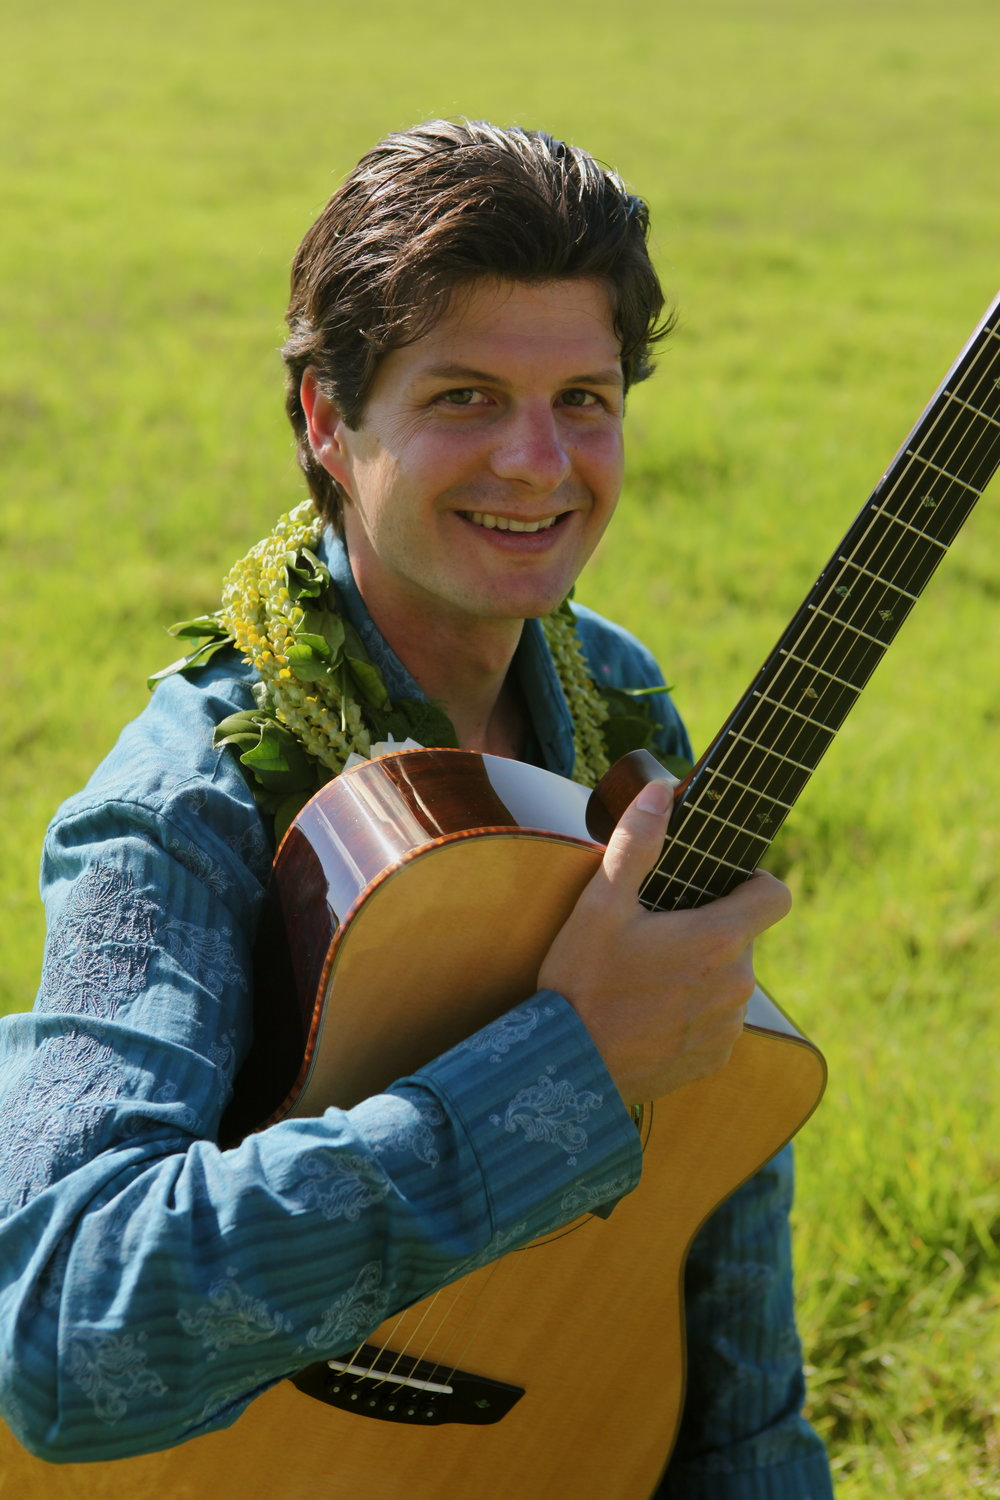 Jeff_Peterson_Makawao_Photodevelop.jpg